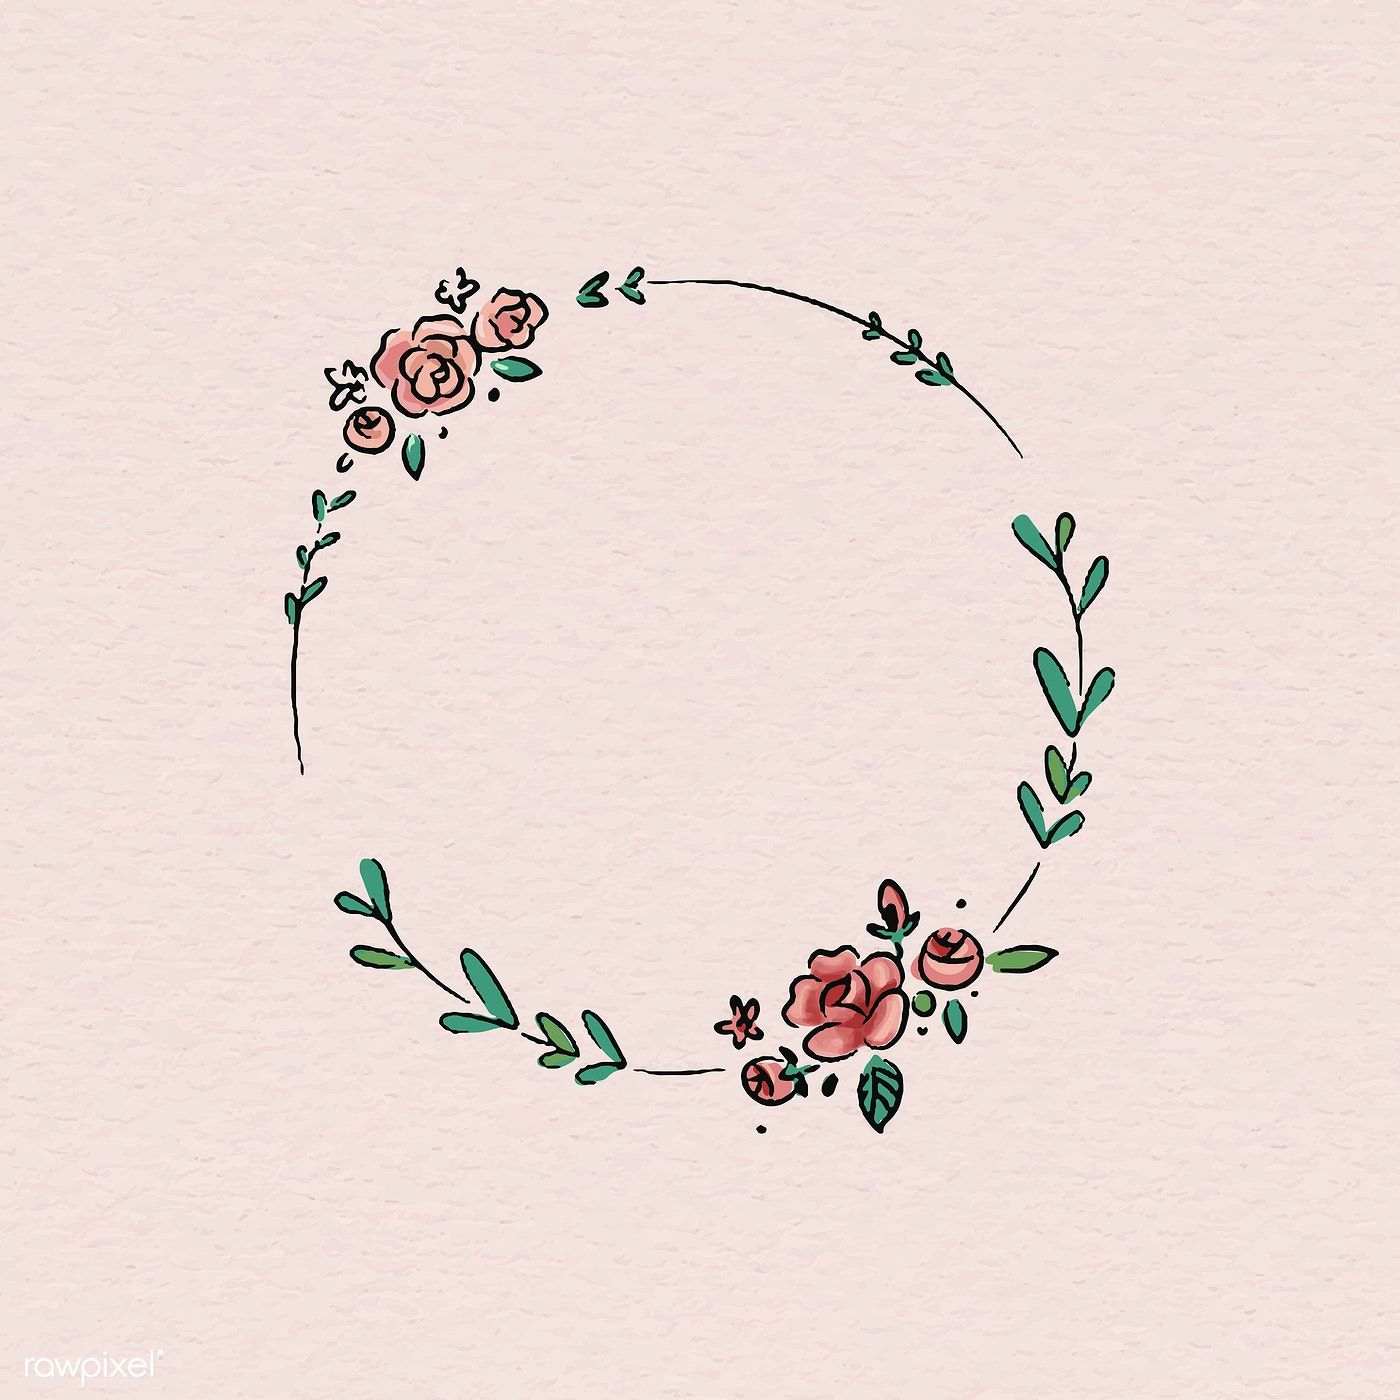 Download Premium Psd Of Valentines Day Message Drawn In A Notebook 843813 In 2020 Frame Wreath Wreath Drawing Floral Doodle